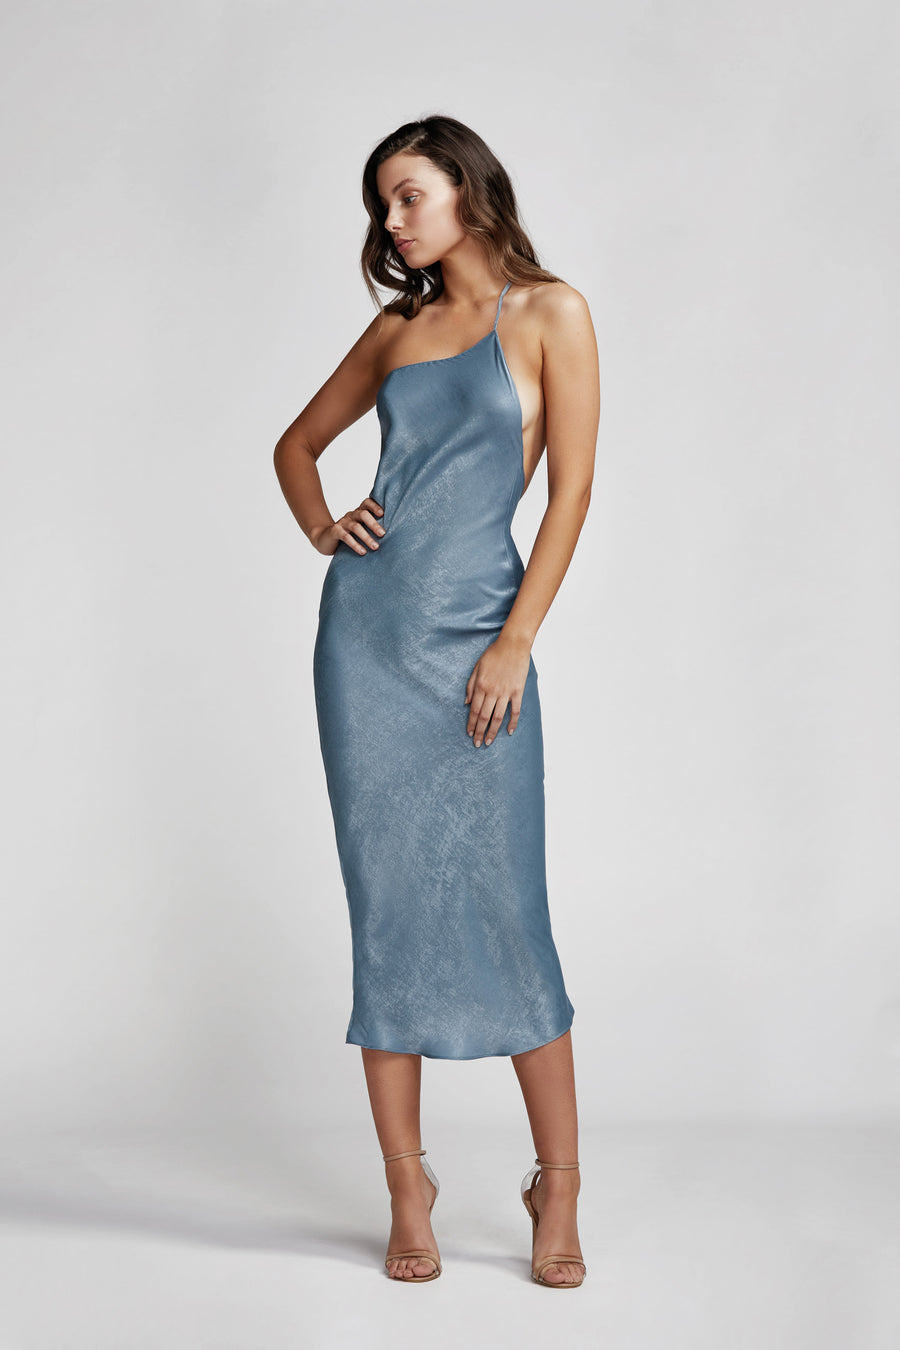 Larissa Dress - Light Blue